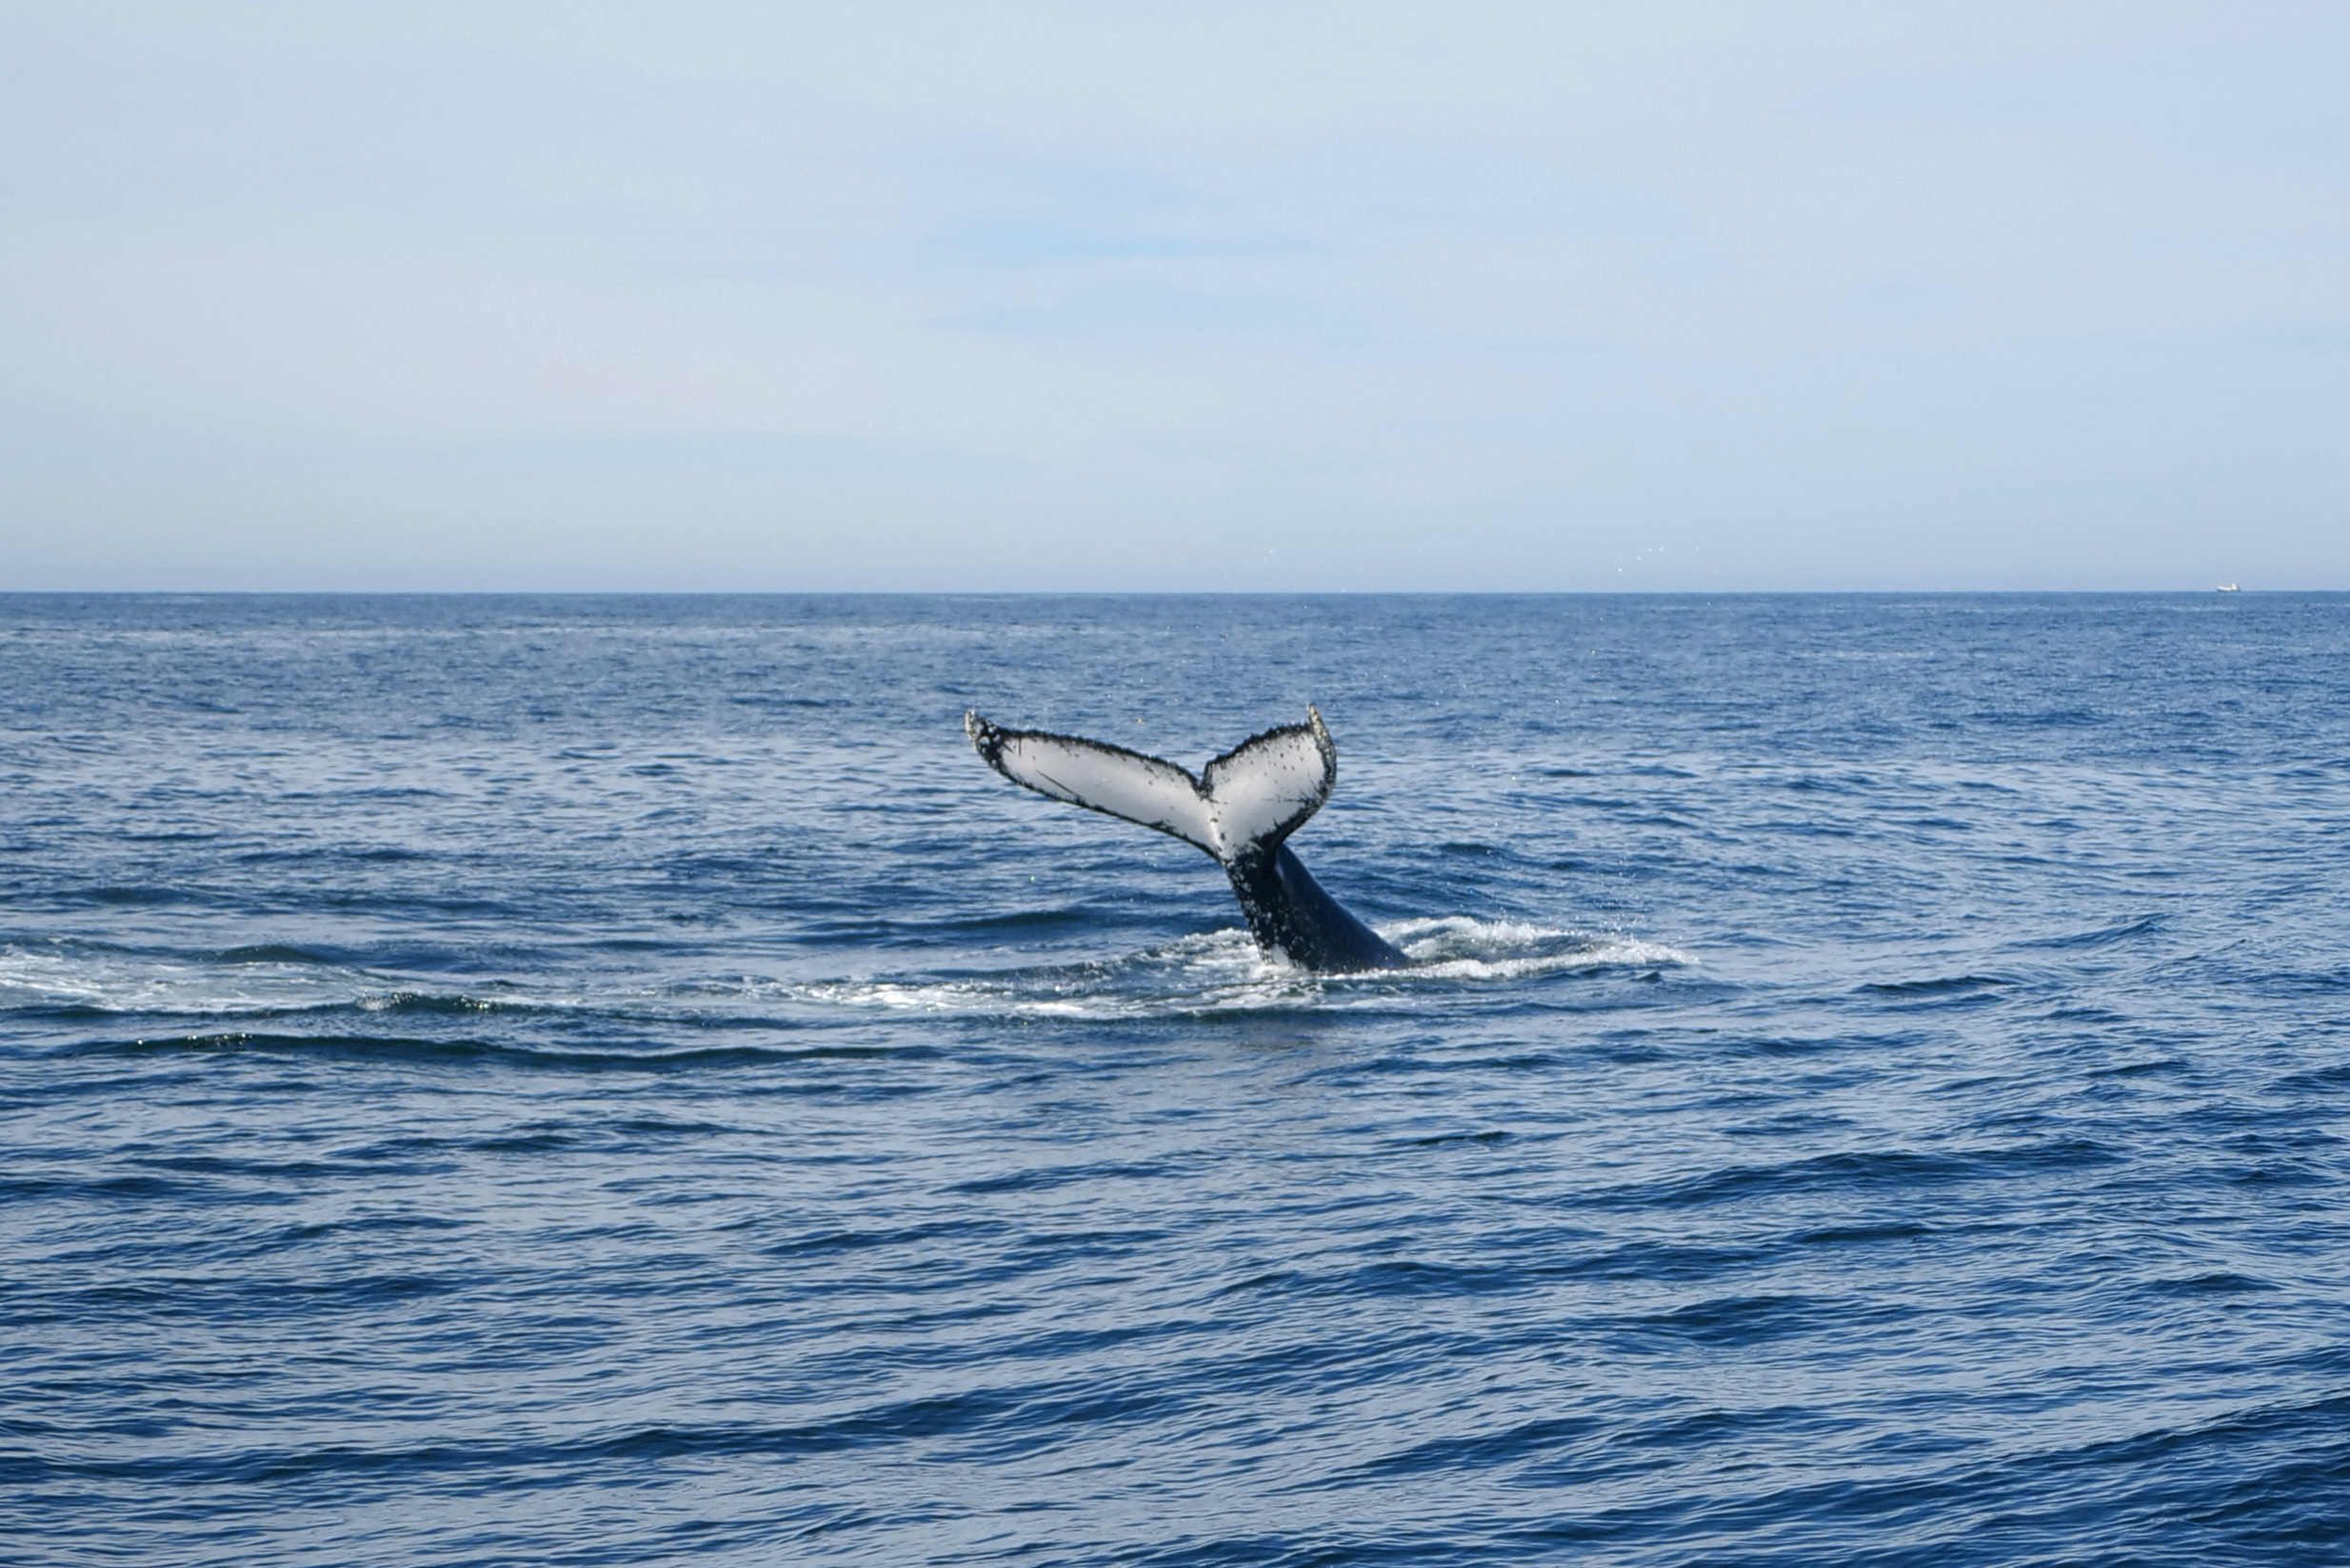 The tail of a whale breaching the sea's surface is seen off the coast of Eden